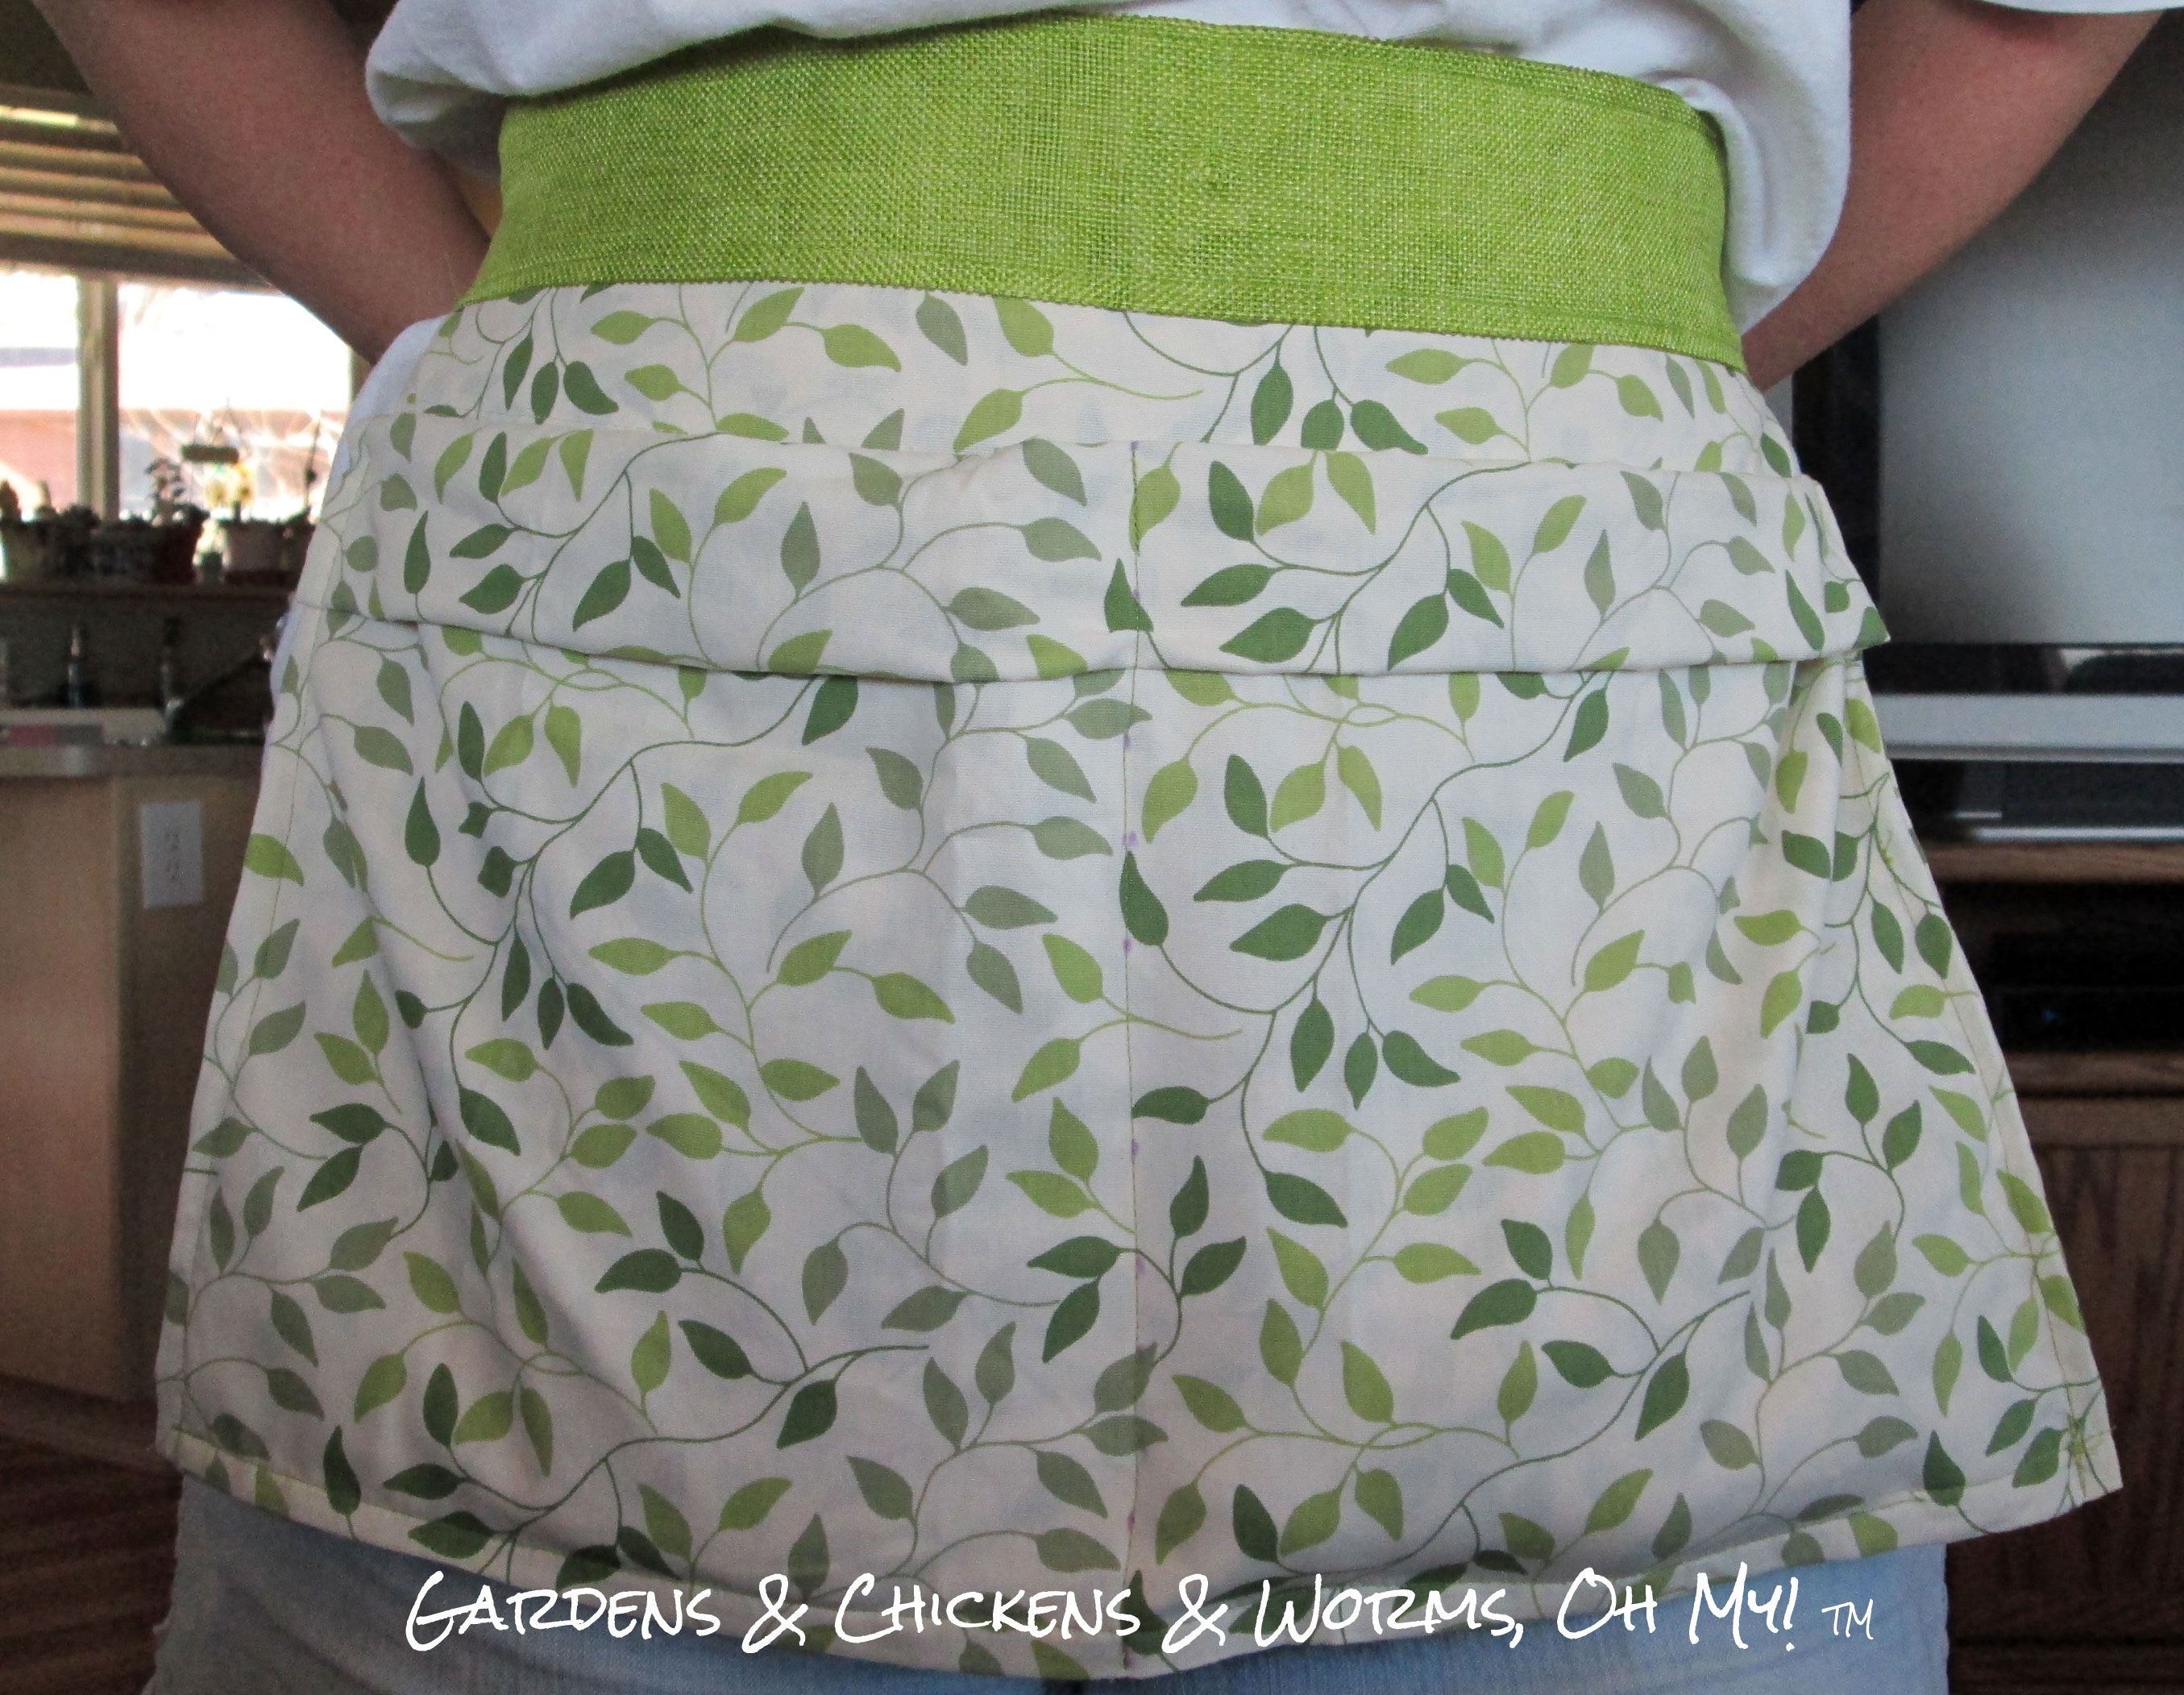 Diy Pillowcase Apron: 800 best Aprons images on Pinterest   Sewing aprons  Sewing ideas    ,